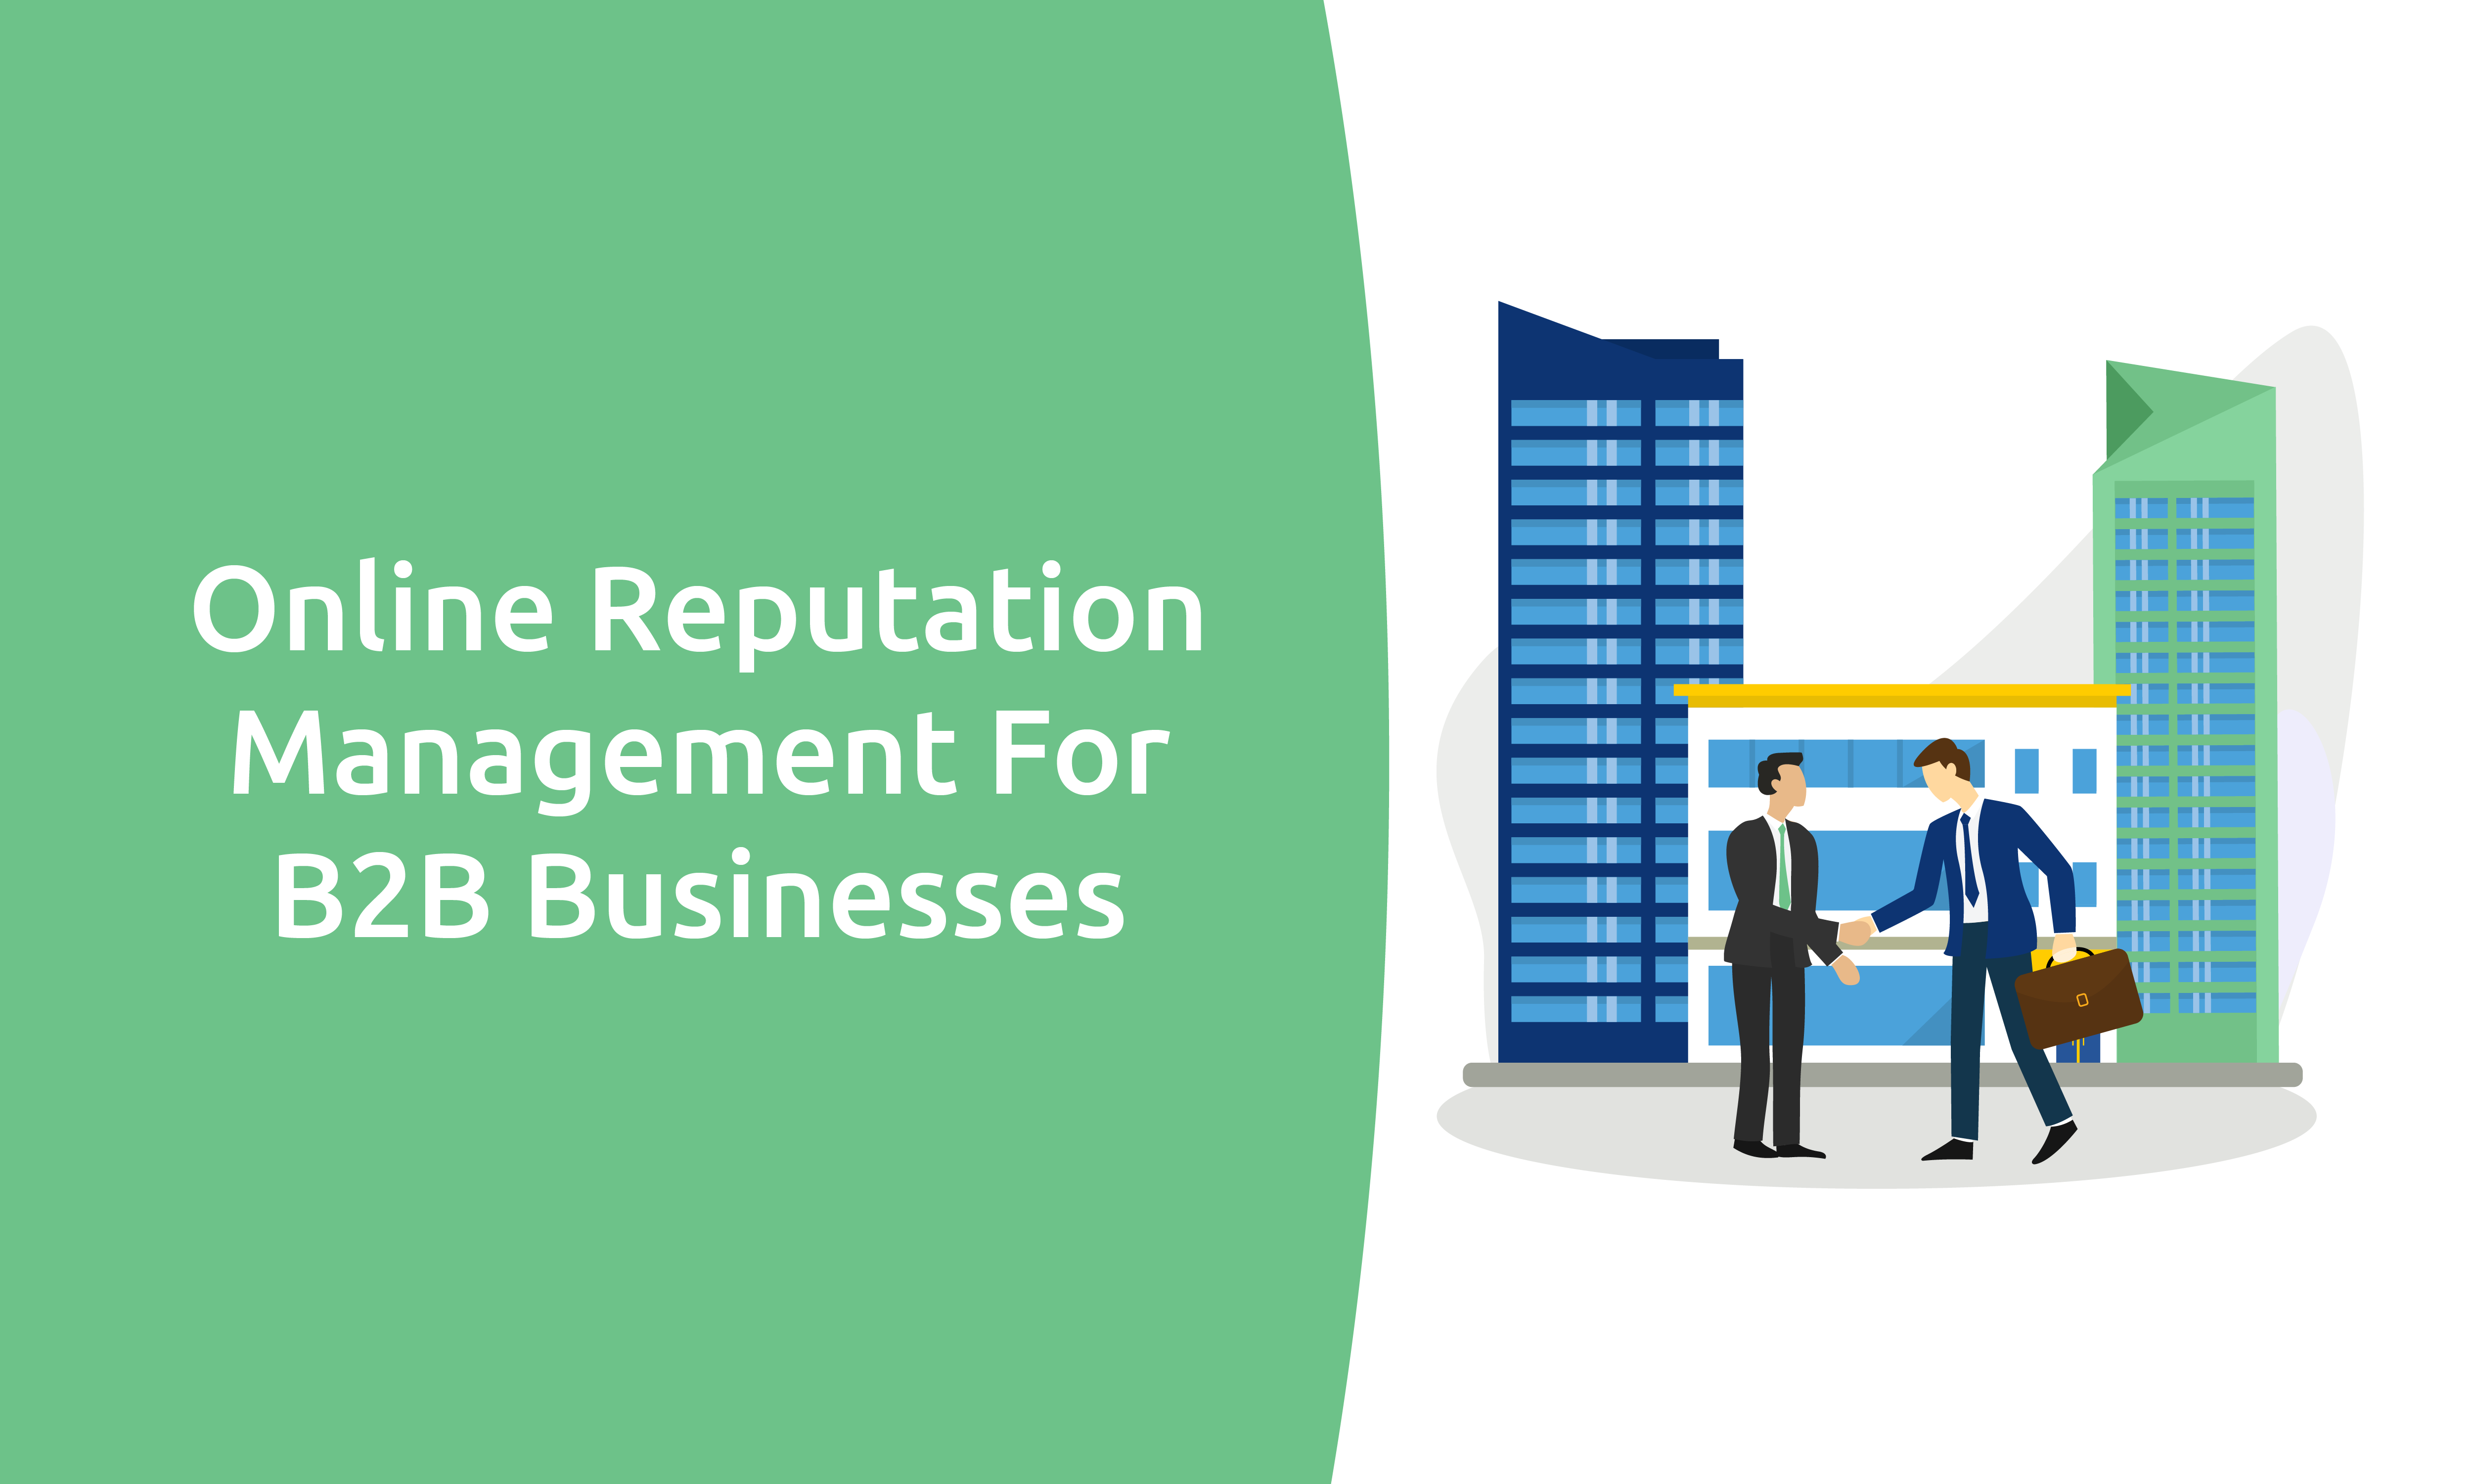 Online Reputation Management For B2B Businesses